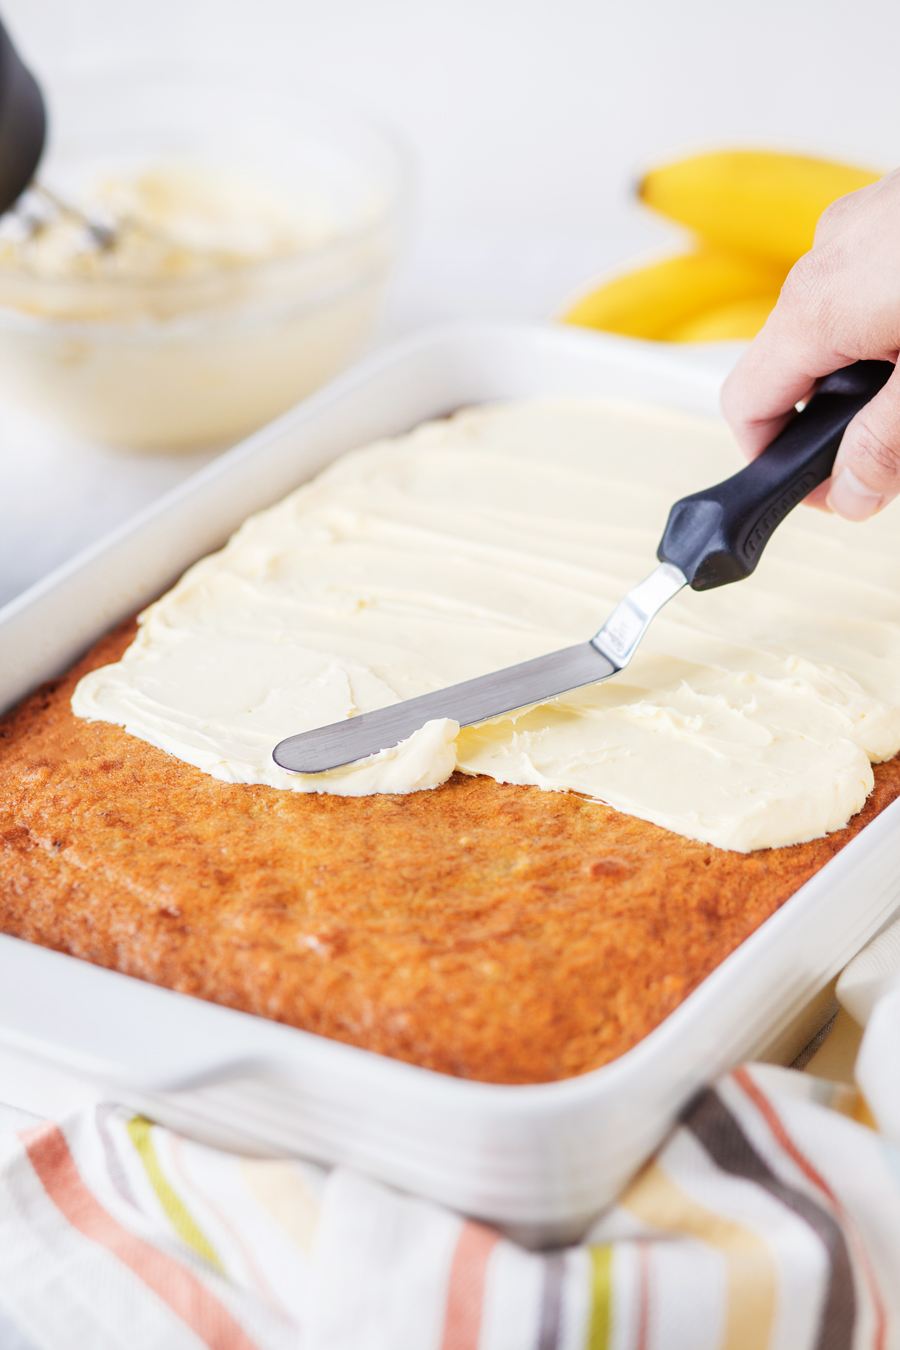 Cream Cheese Frosting being frosted on Banana Cake